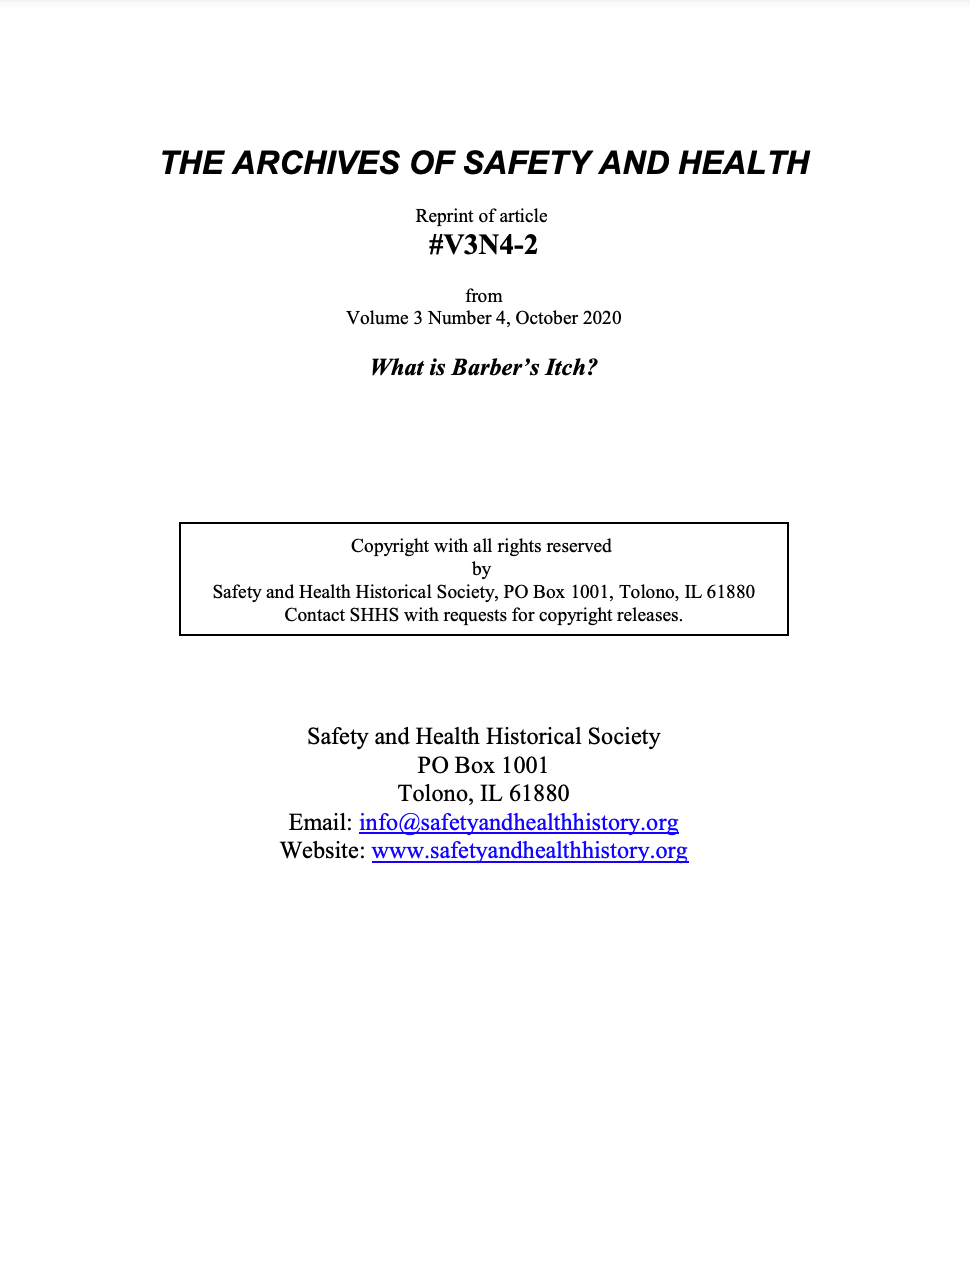 Full Article V3N4-2 of THE ARCHIVES OF SAFETY AND HEALTH - What is Barber's Itch?